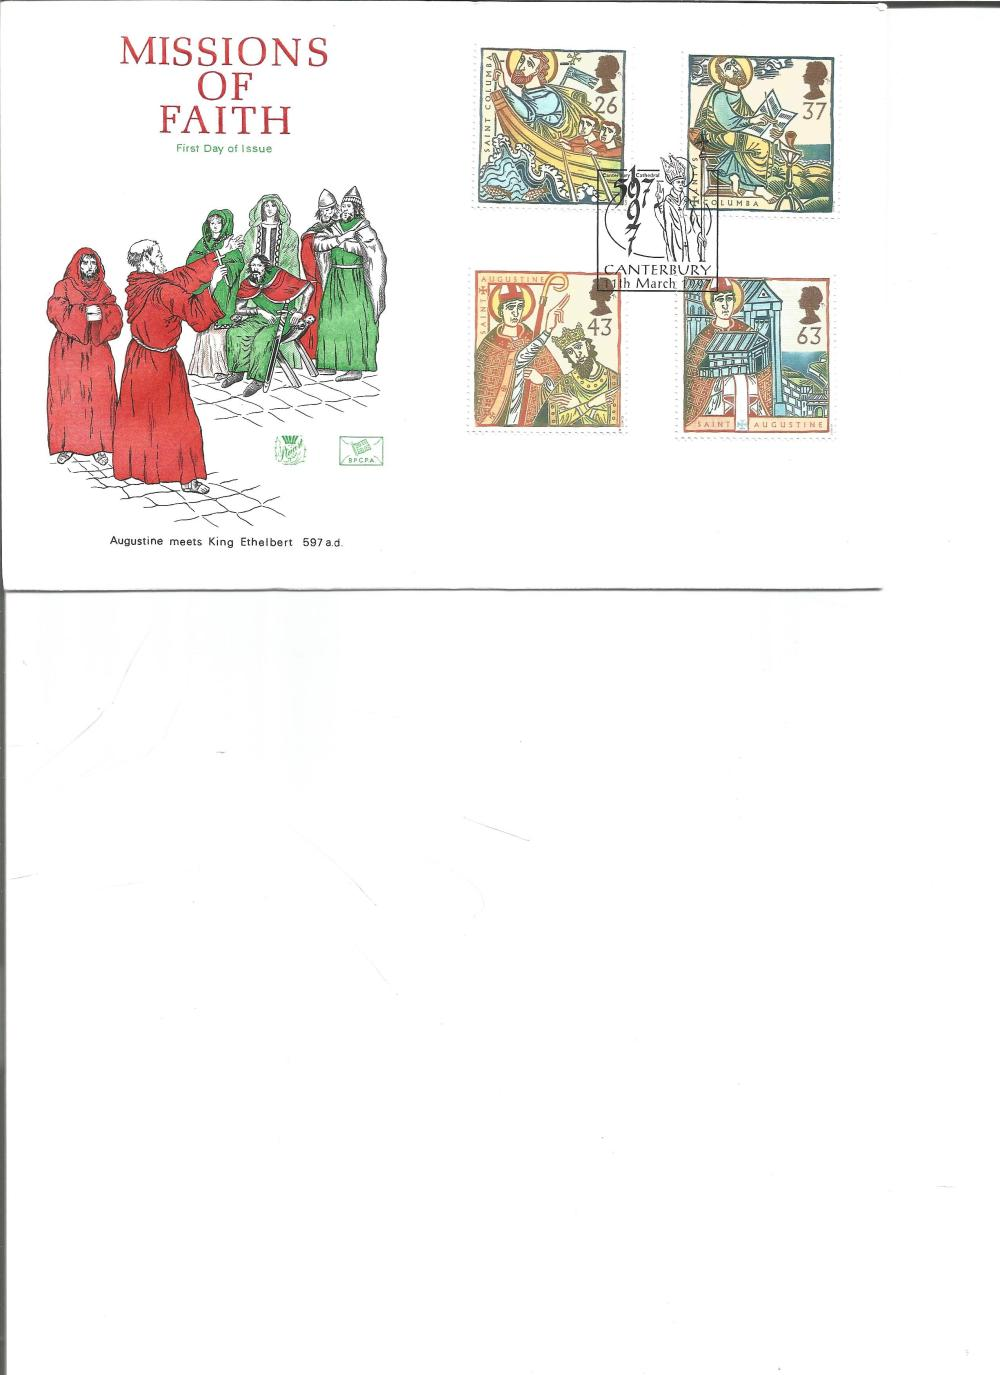 FDC Missions of Faith Augustine Meets King Ethelbert 597 a. d c/w set of four commemorative stamps